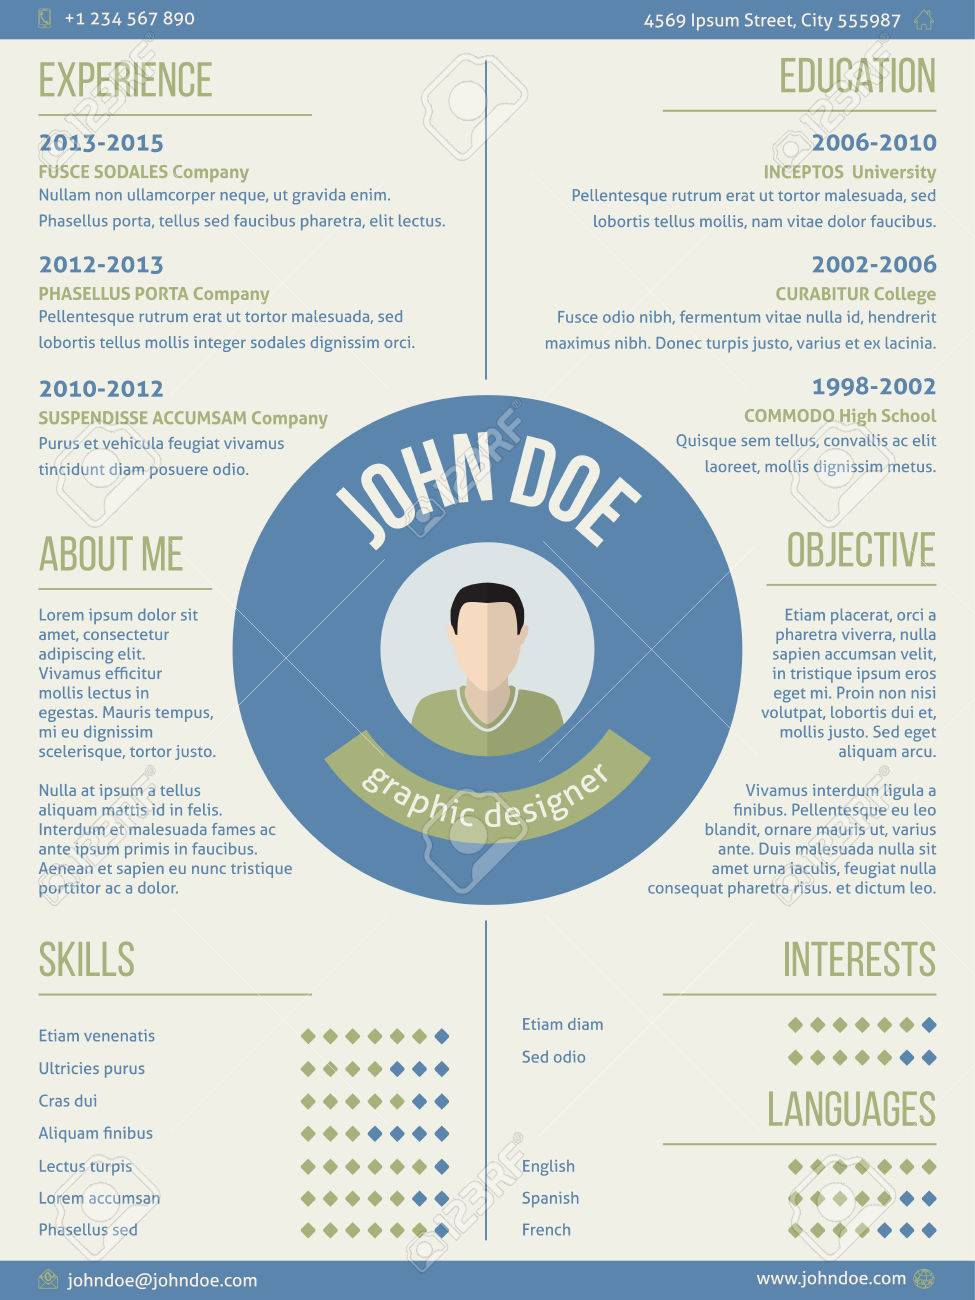 Modern Resume Curriculum Vitae Cv Design With Photo And Name In Center  Stock Vector   41599273  Resume Or Curriculum Vitae